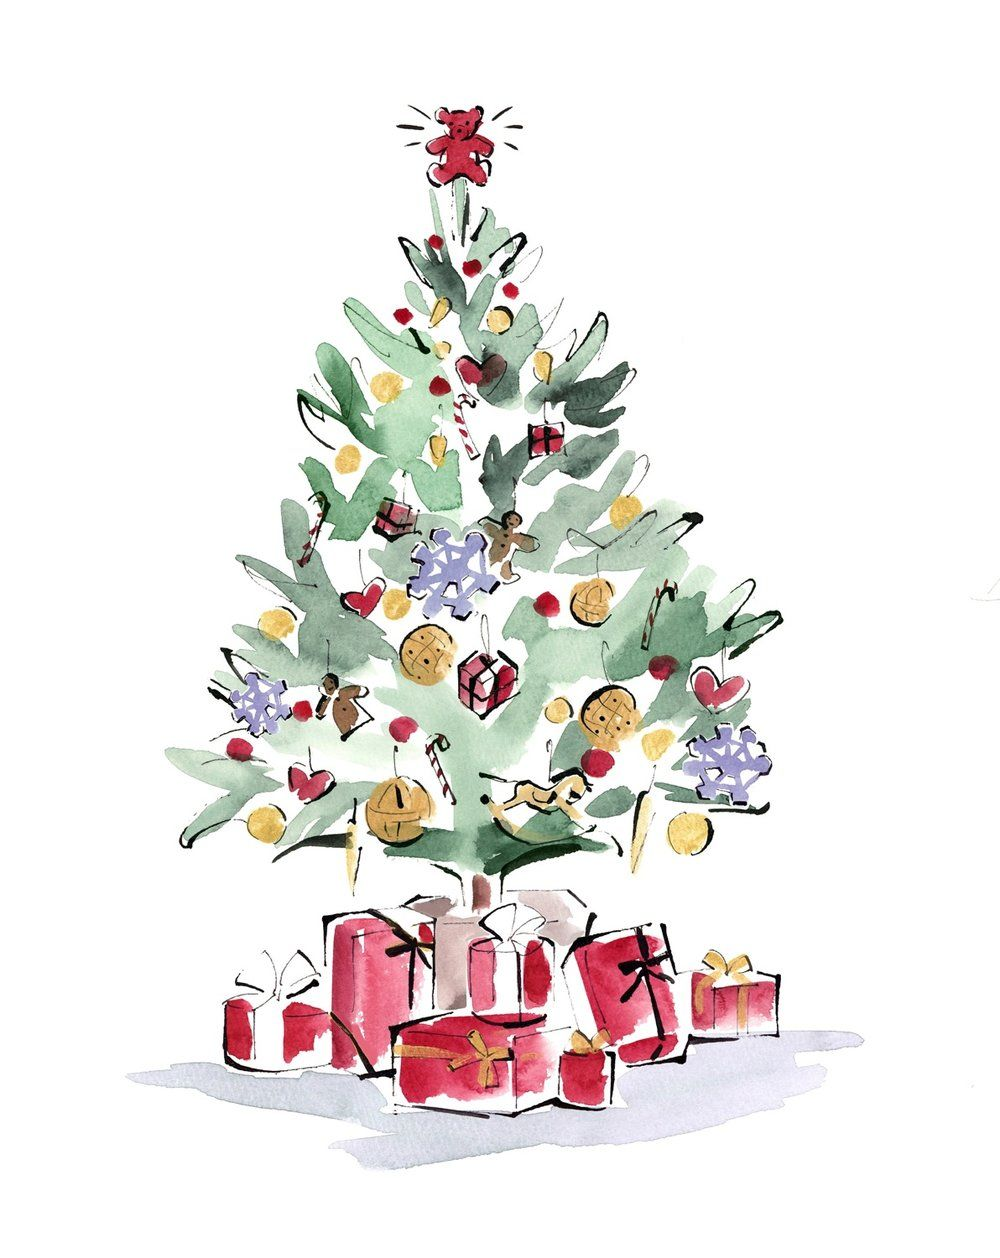 Christmas Illustrations.Yoco Nagamiya Dorchester London Christmas Illustrations